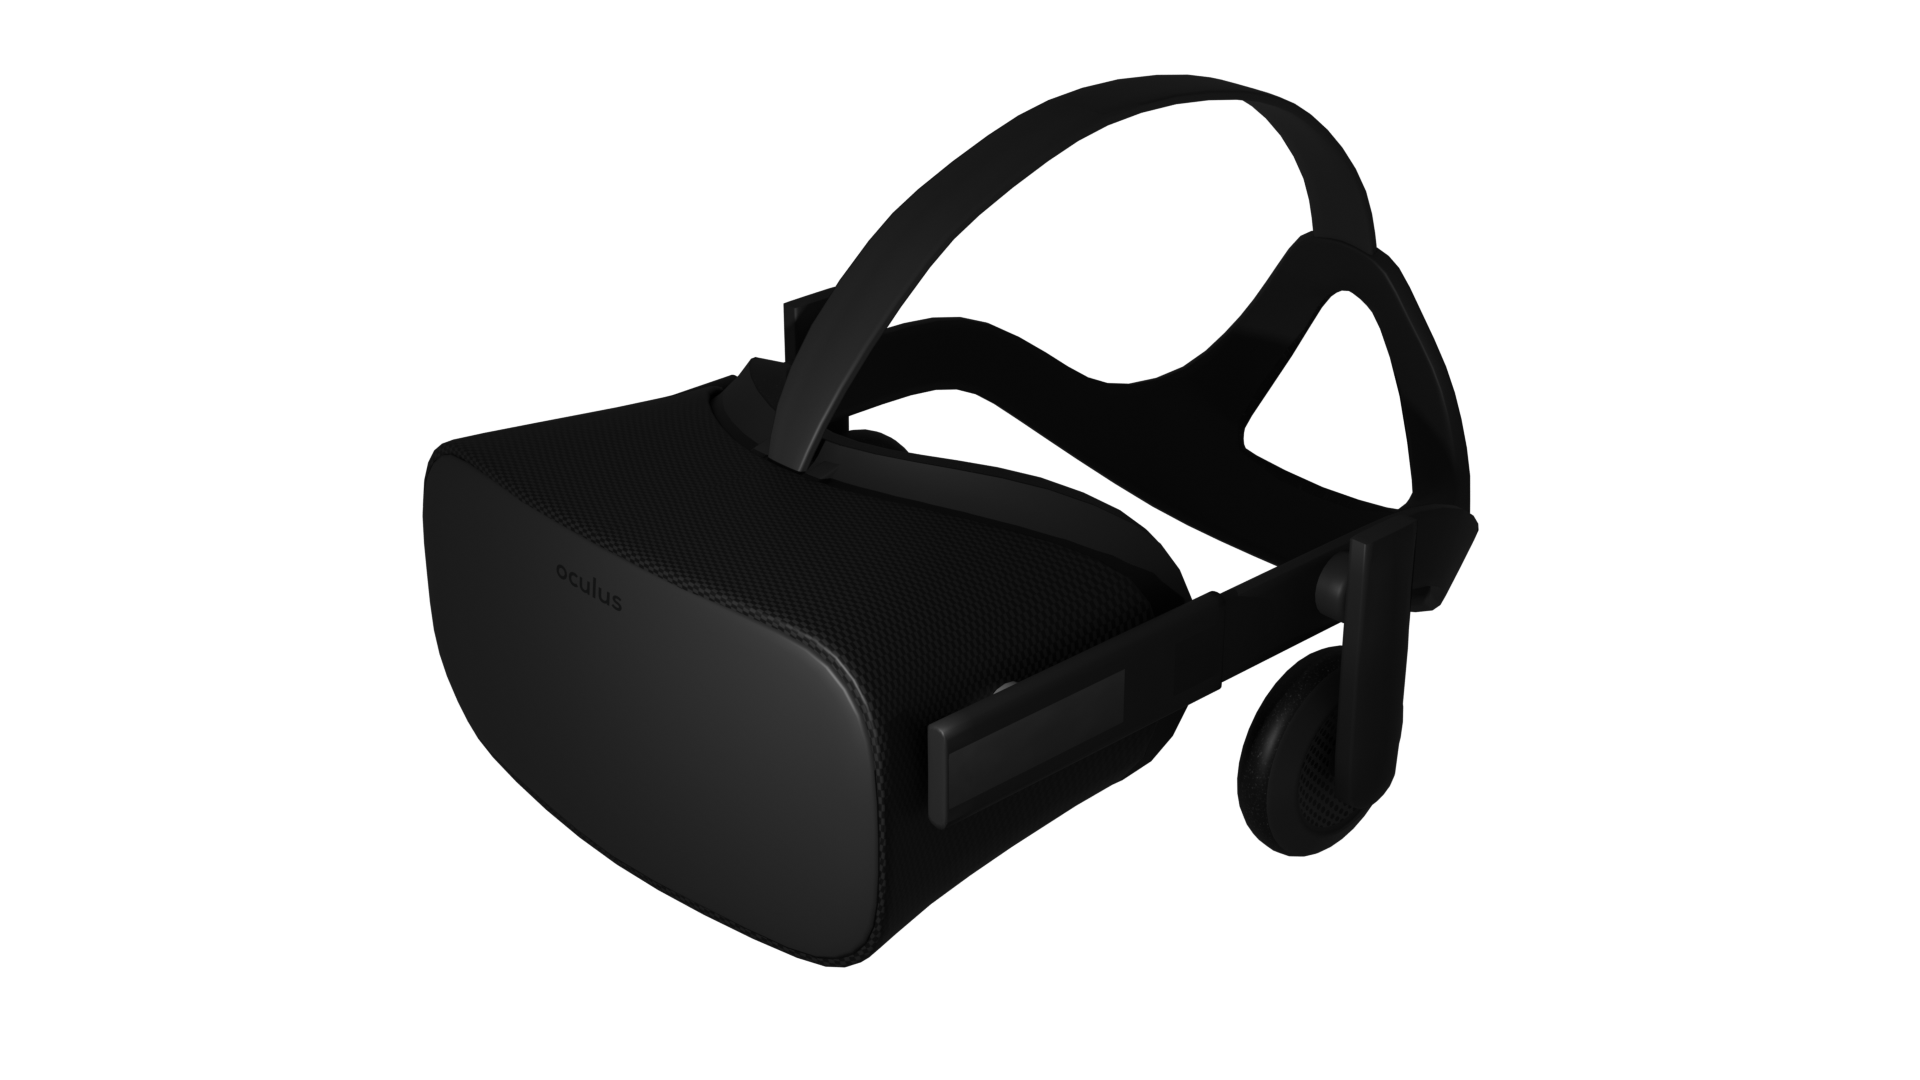 gesture control for vr